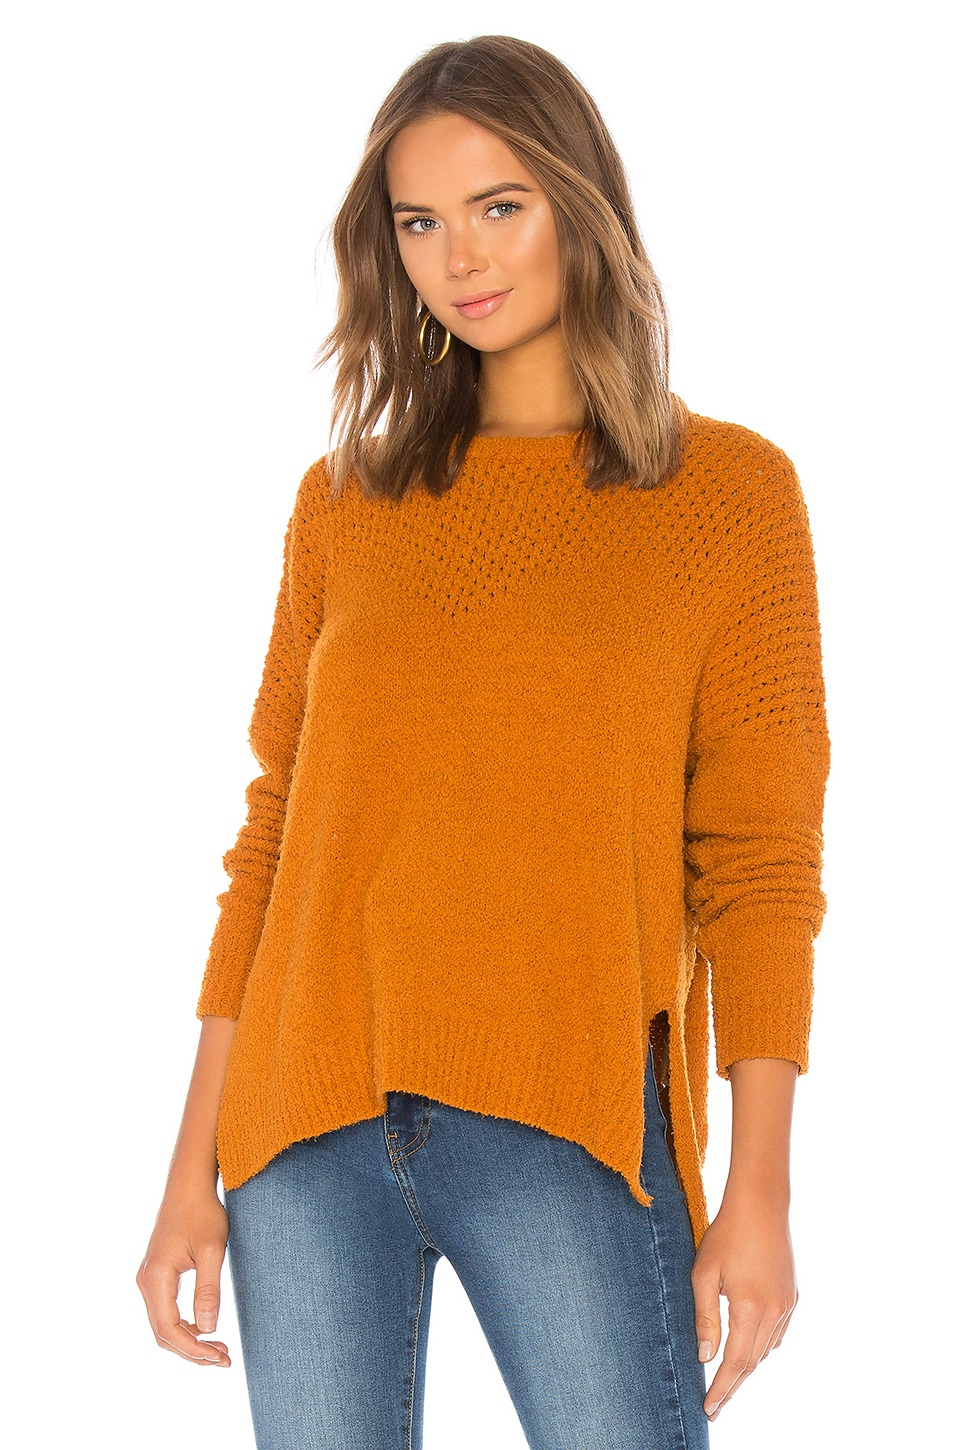 cupcakes and cashmere Kirk Sweater in Pumpkin Spice